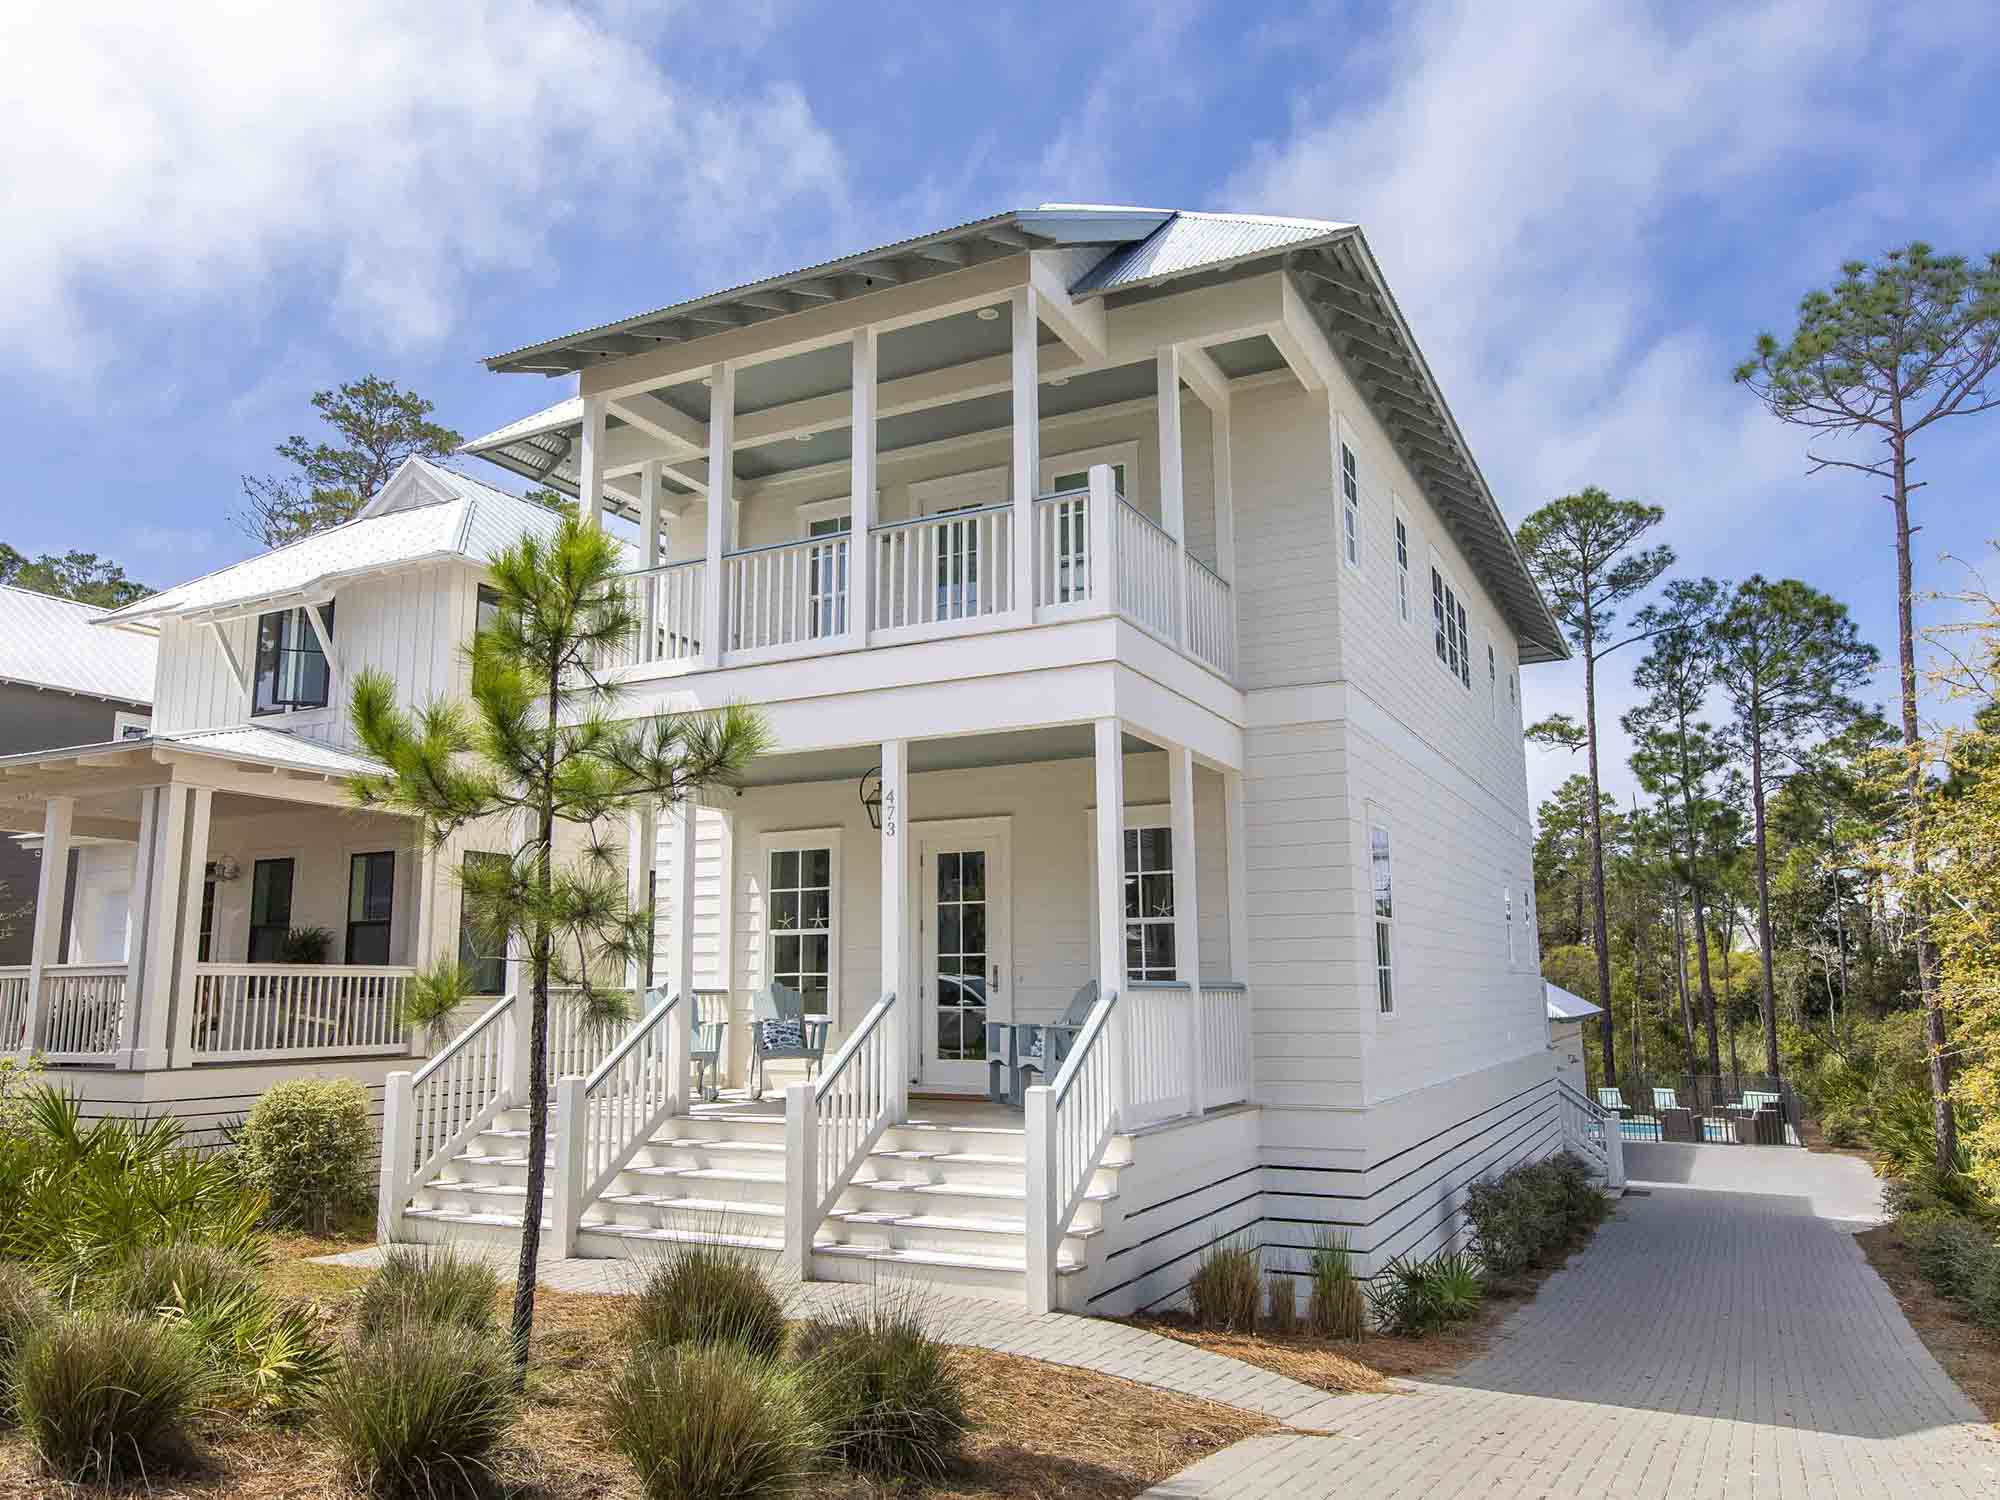 30A Vacation Home